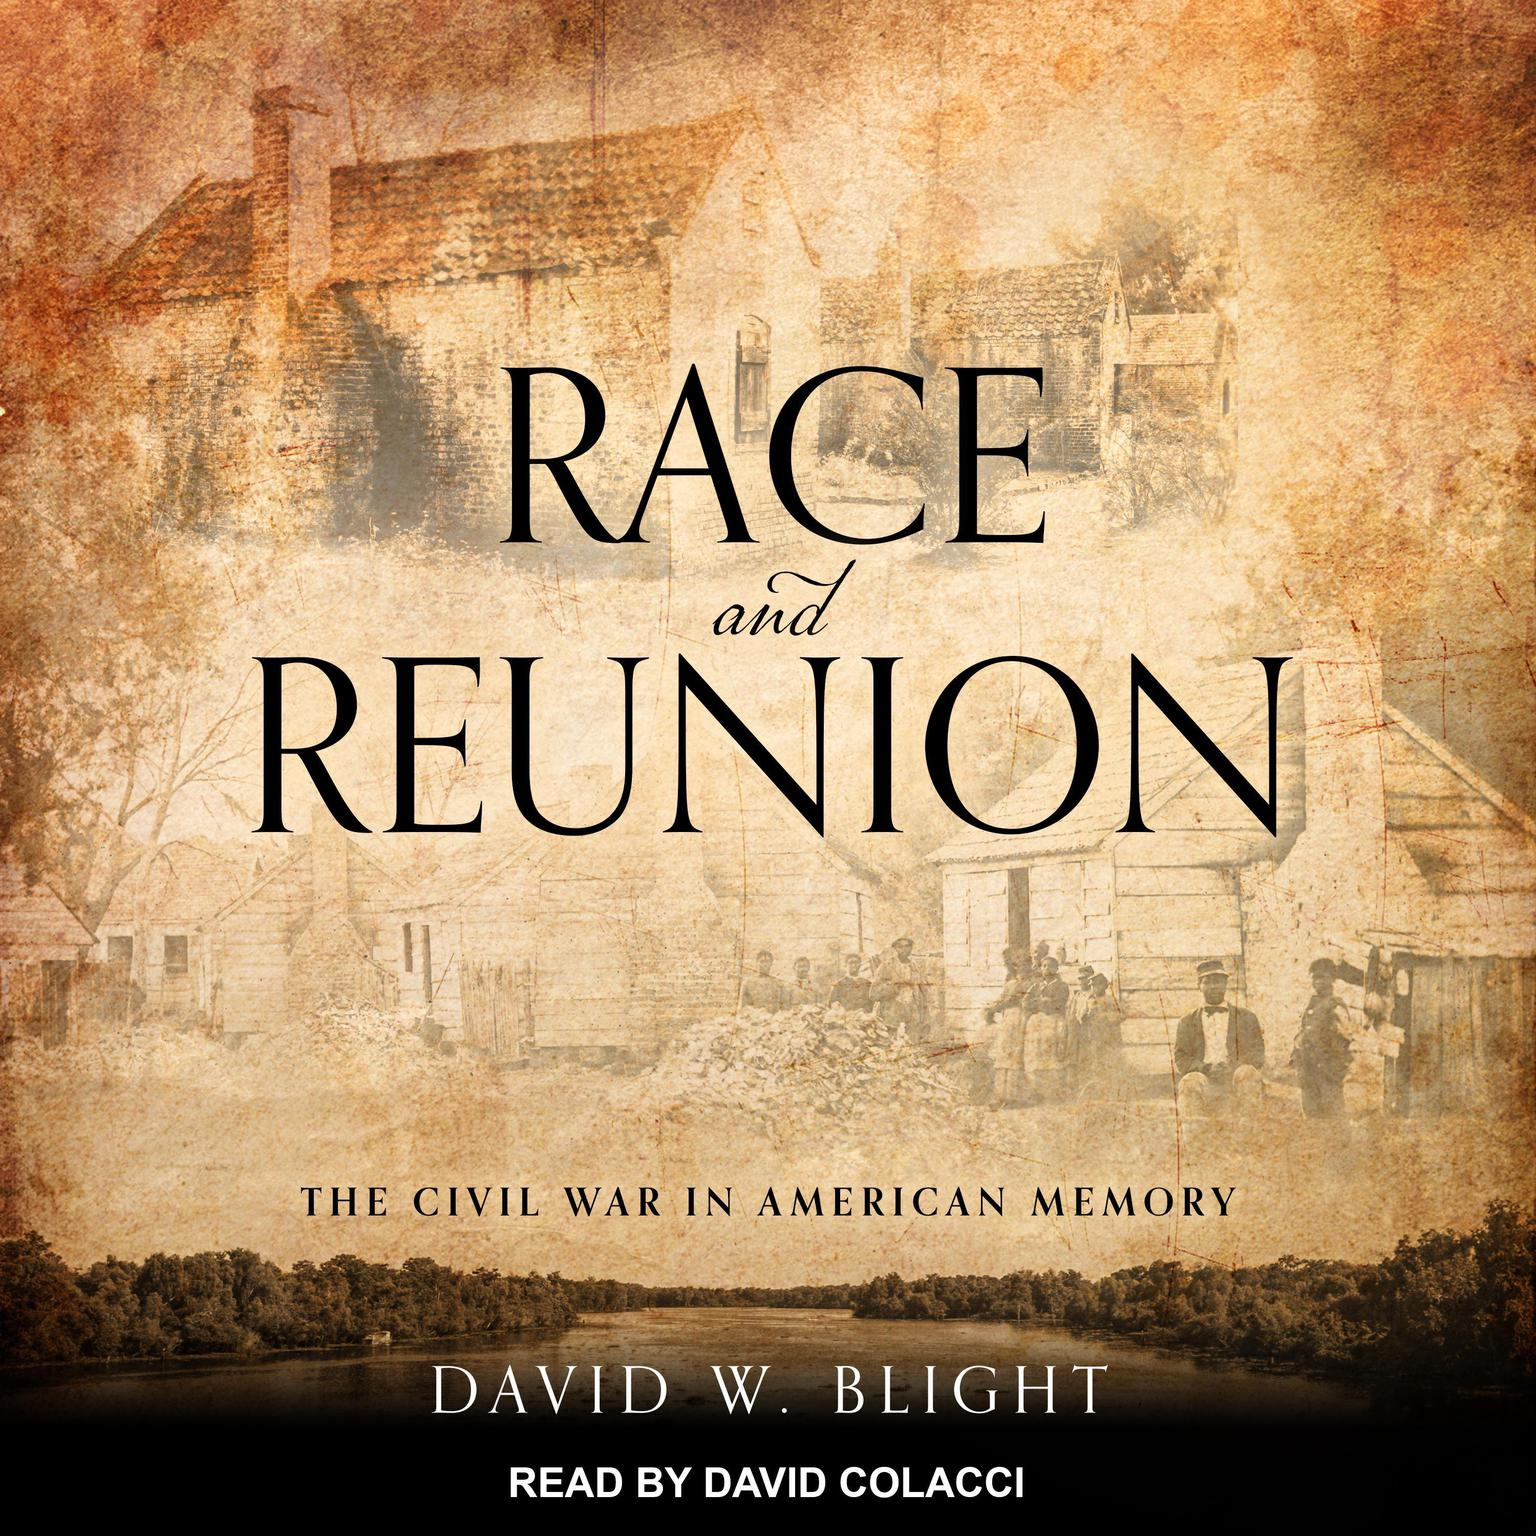 Race and Reunion: The Civil War in American Memory Audiobook, by David W. Blight